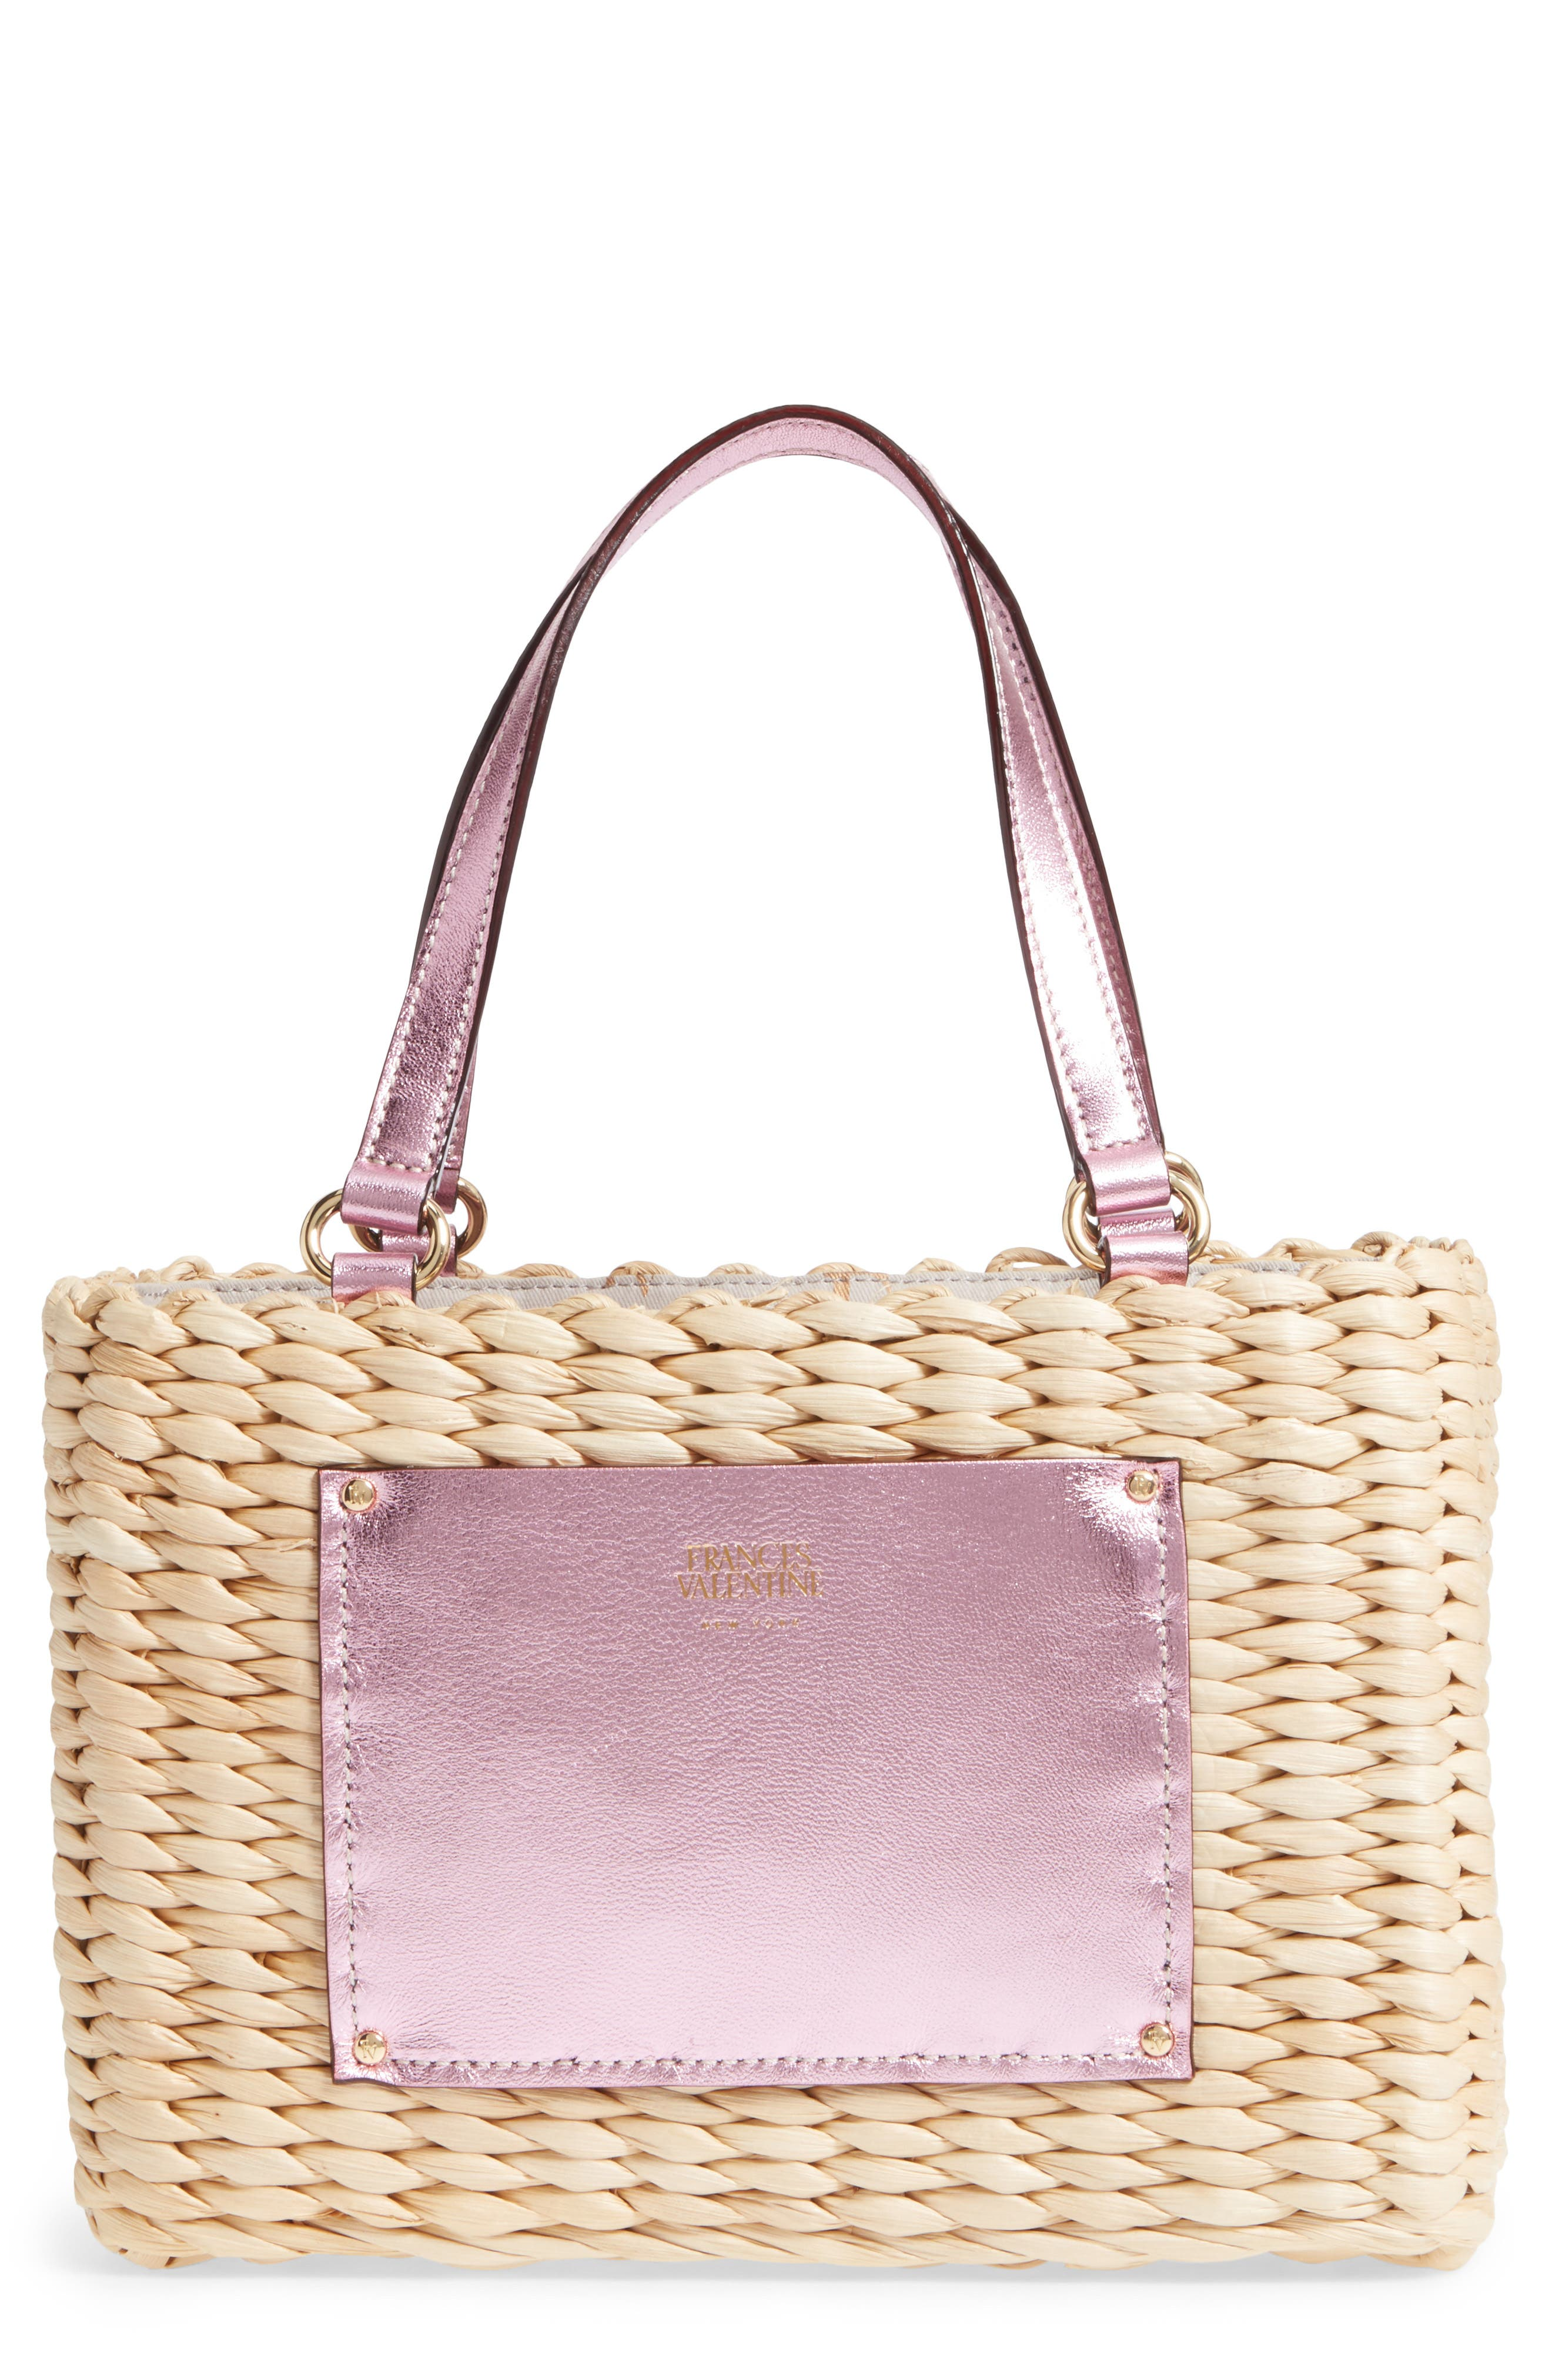 Alternate Image 1 Selected - Frances Valentine Small Woven Straw Tote